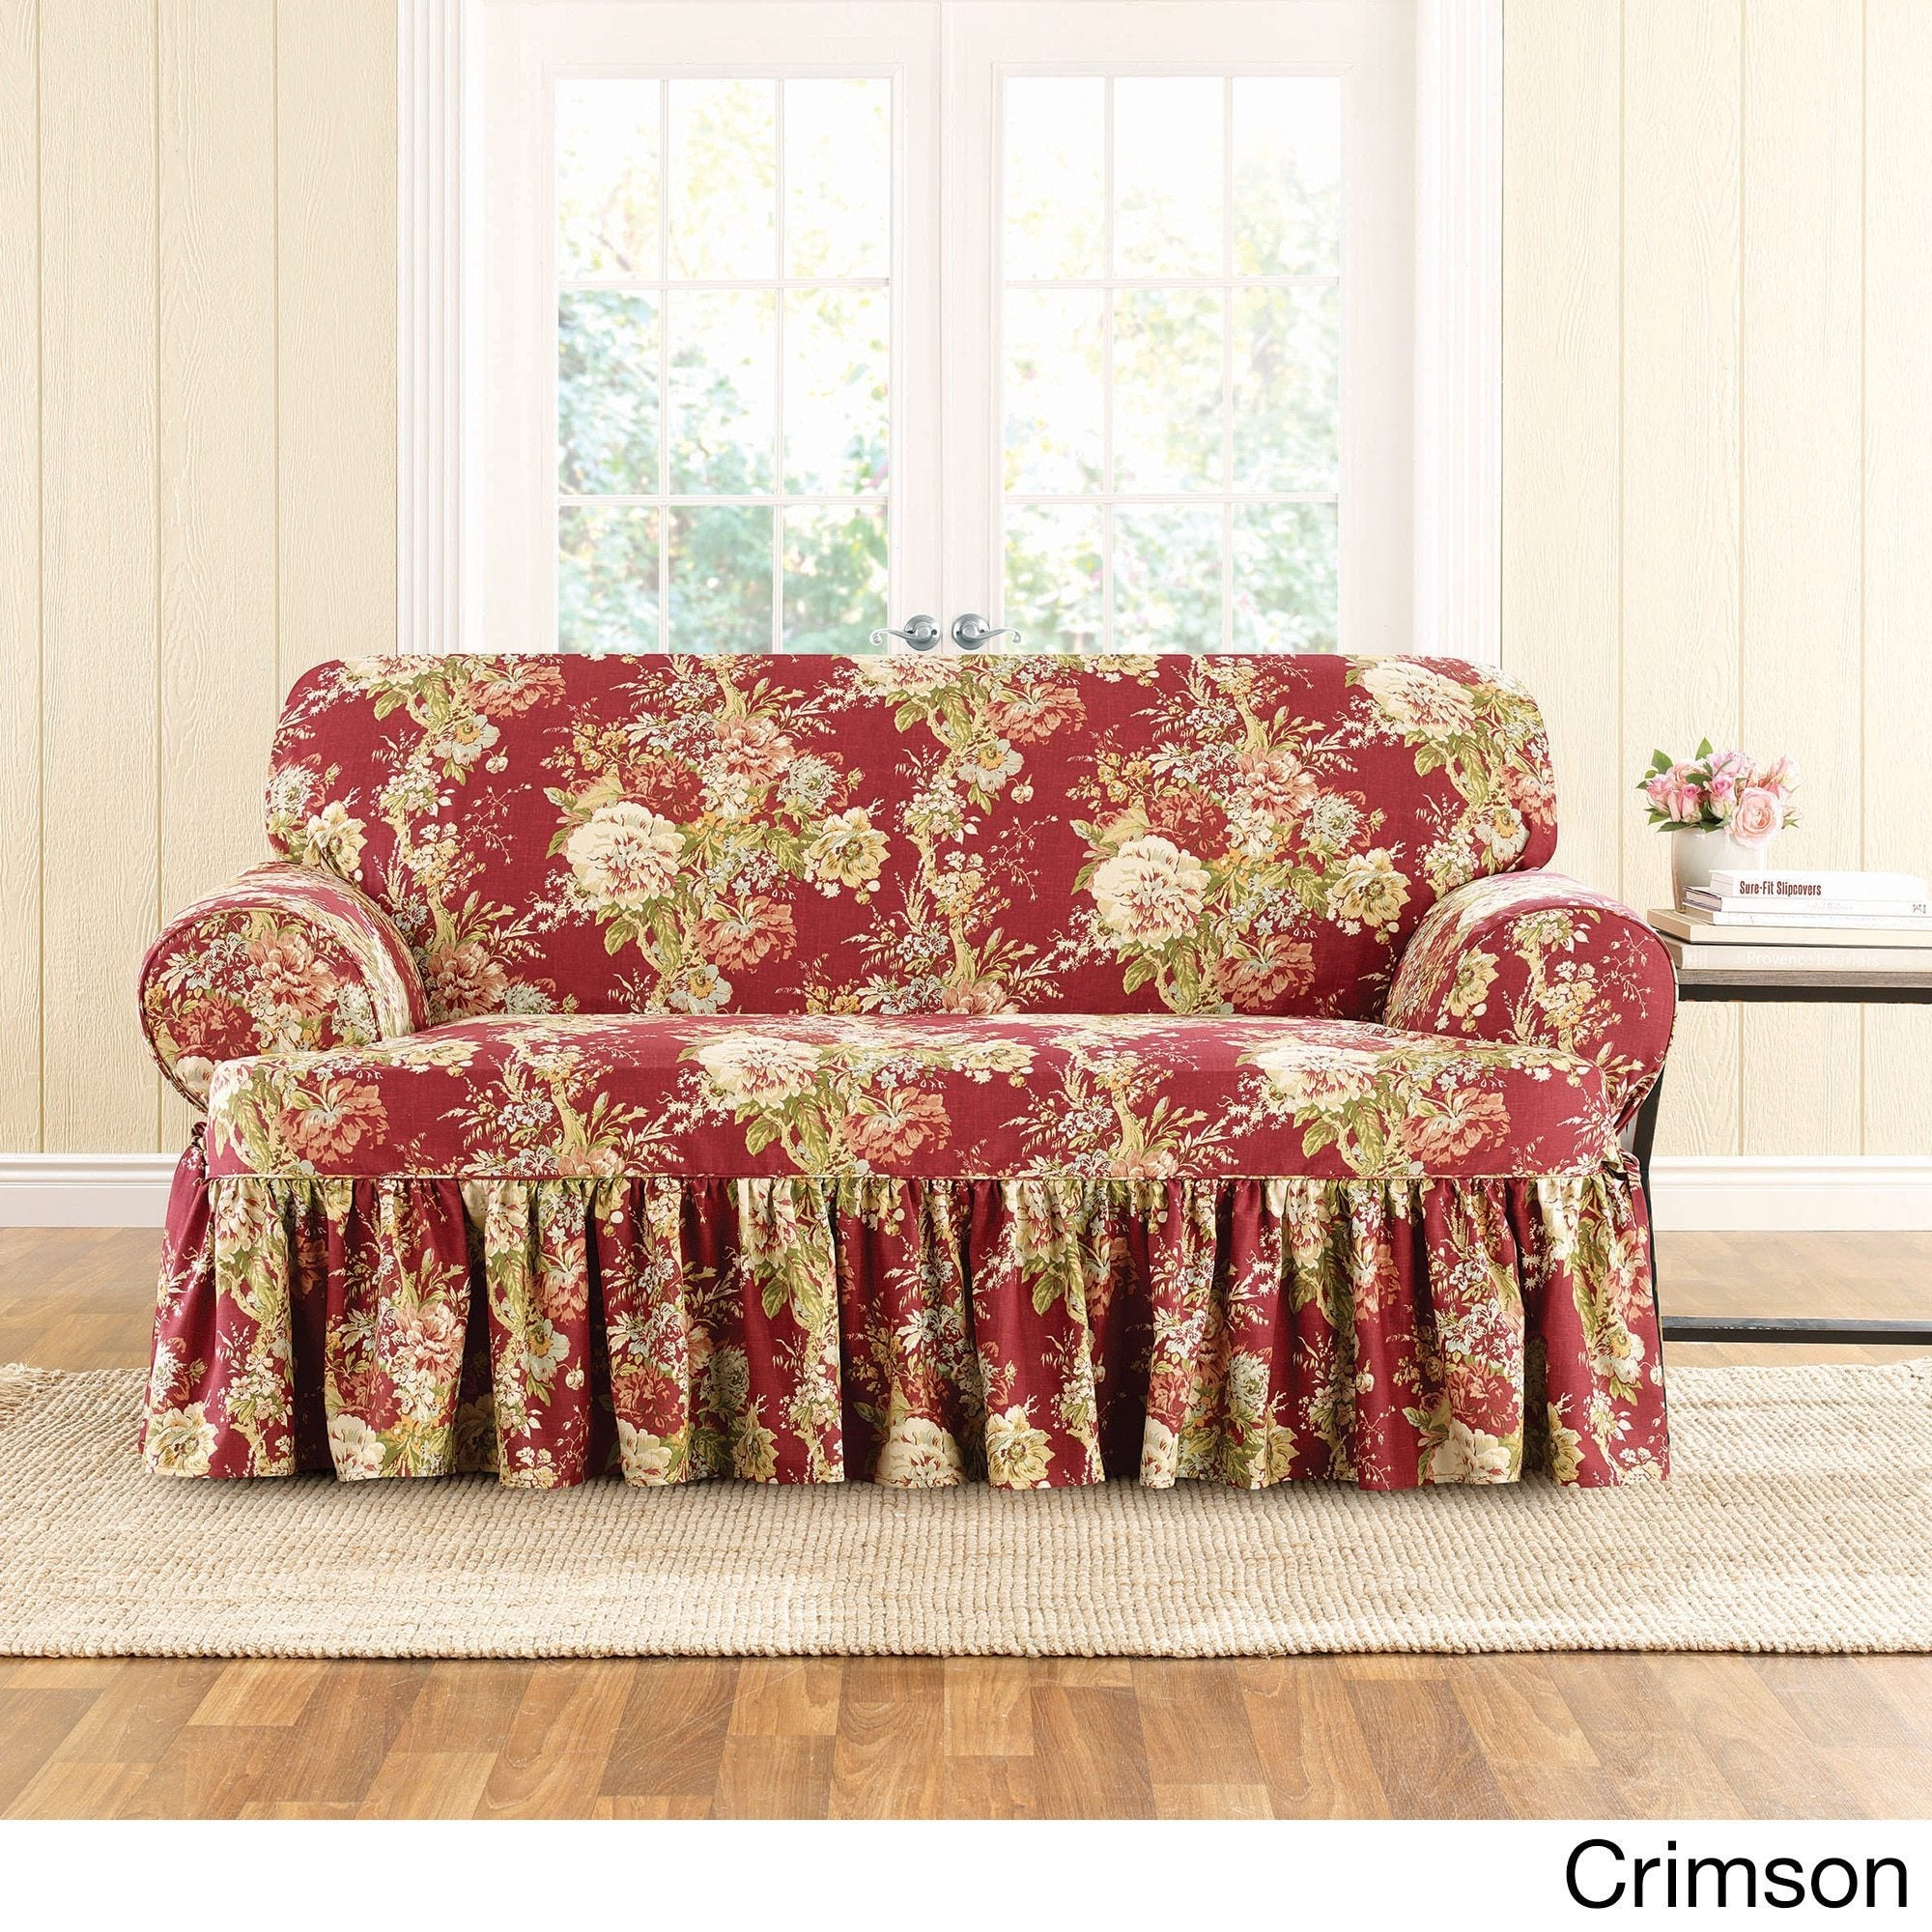 both basics it makes burgundy this i slipcovers sure chose loveseat beautiful home review giveaway a orig and since slipcover fit received definitely sofa shade